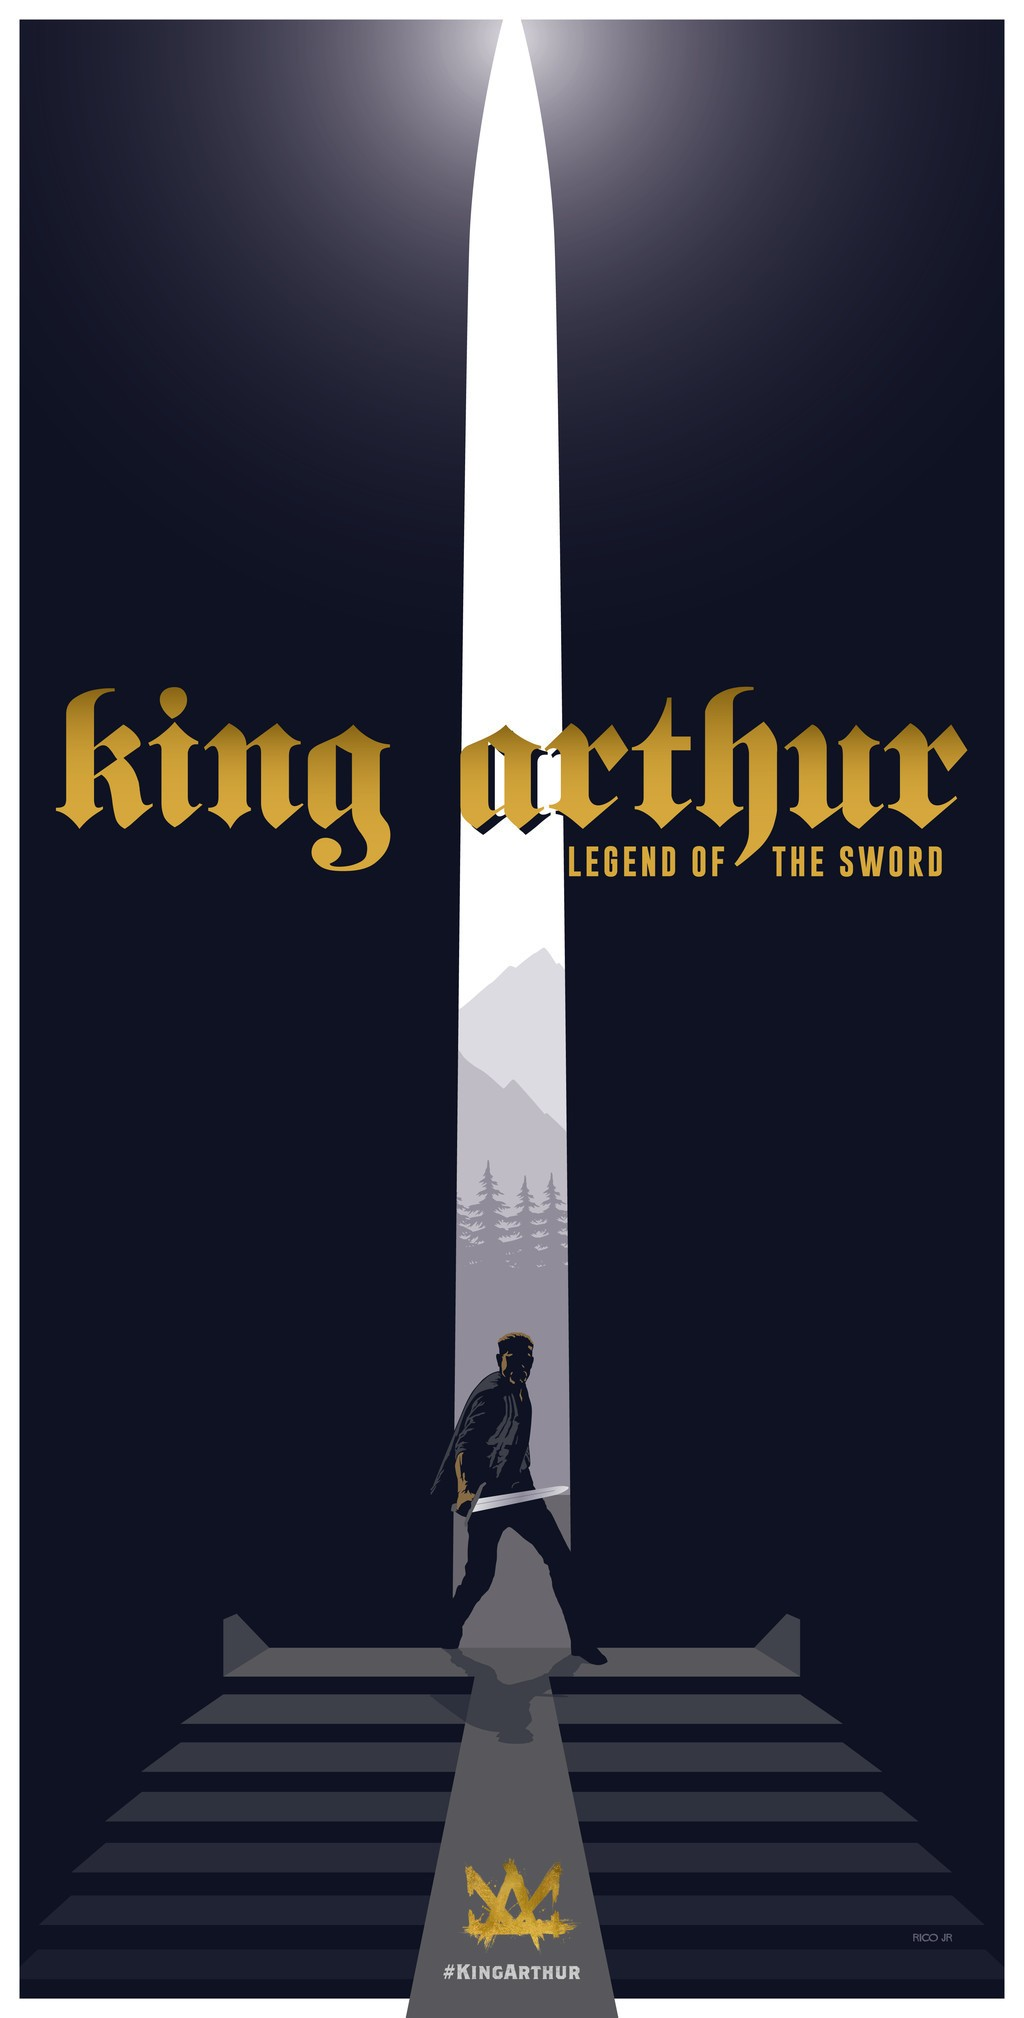 King Arthur Wallpaper King Arthur Legend Of The Sword Tattoo